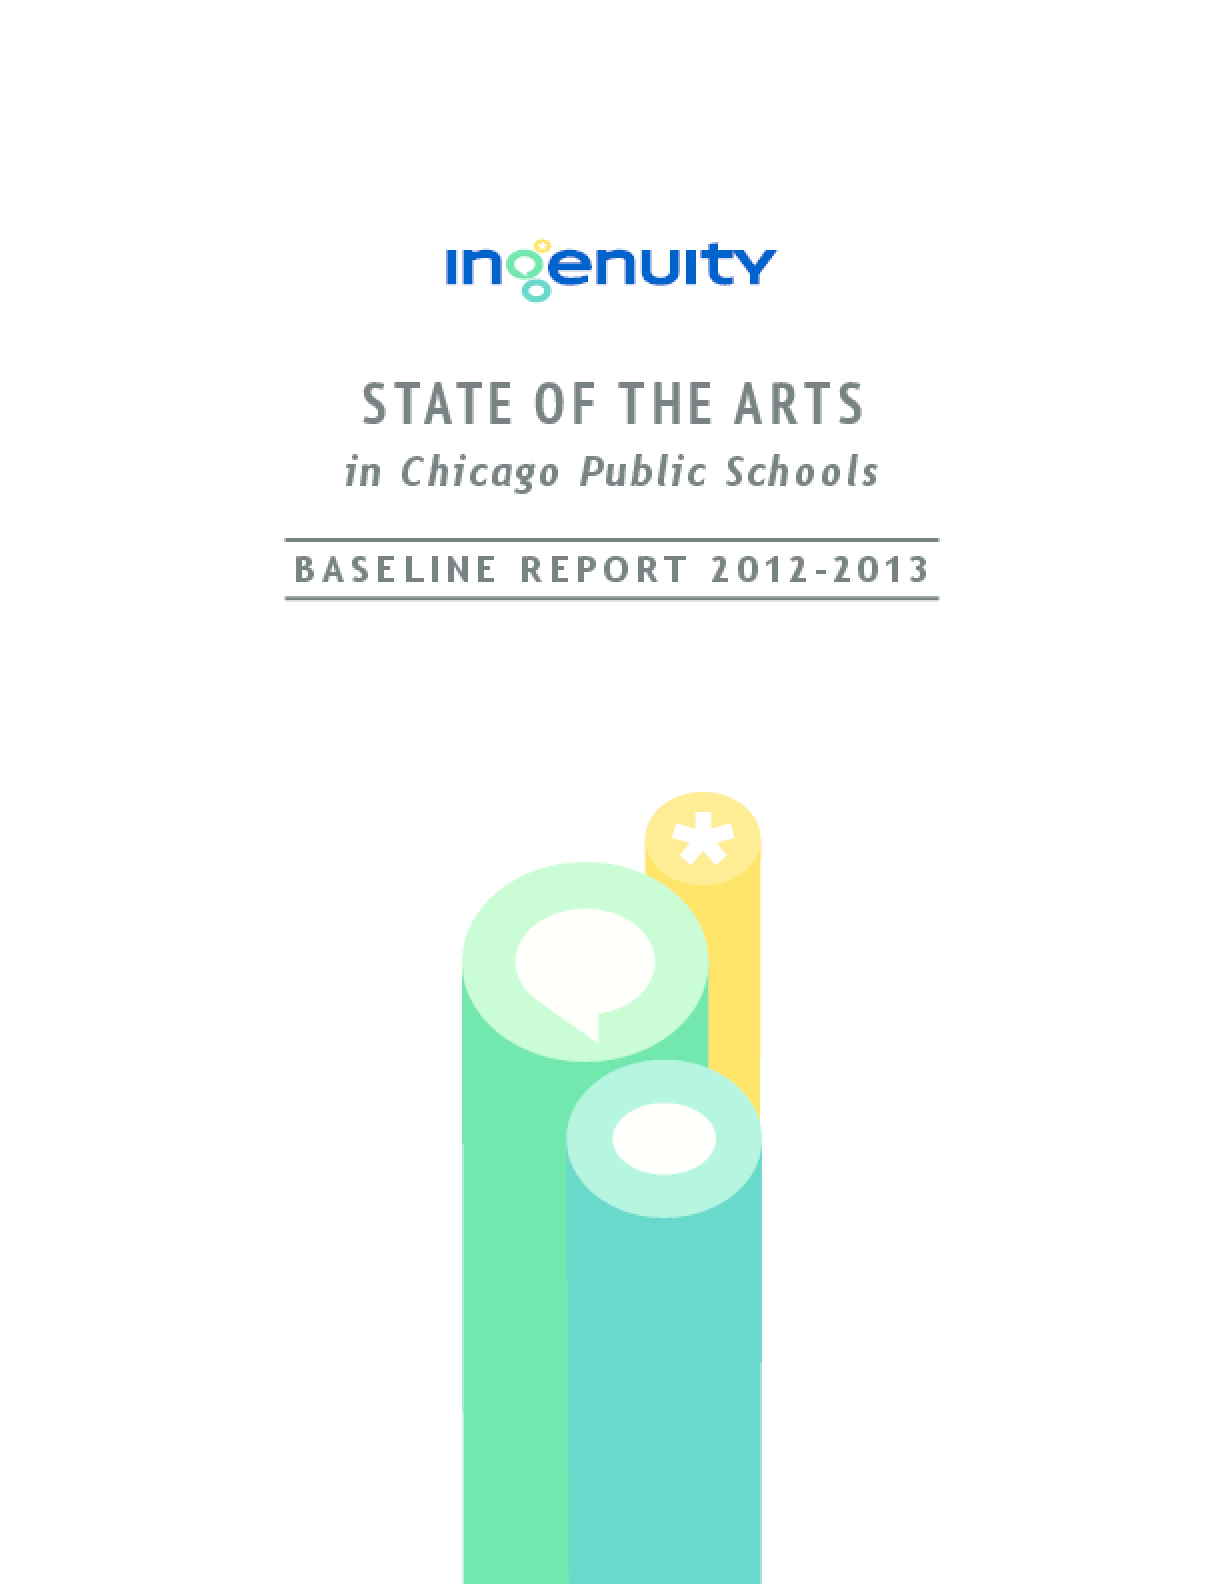 State of the Arts in Chicago Public Schools: Baseline Report 2012-2013